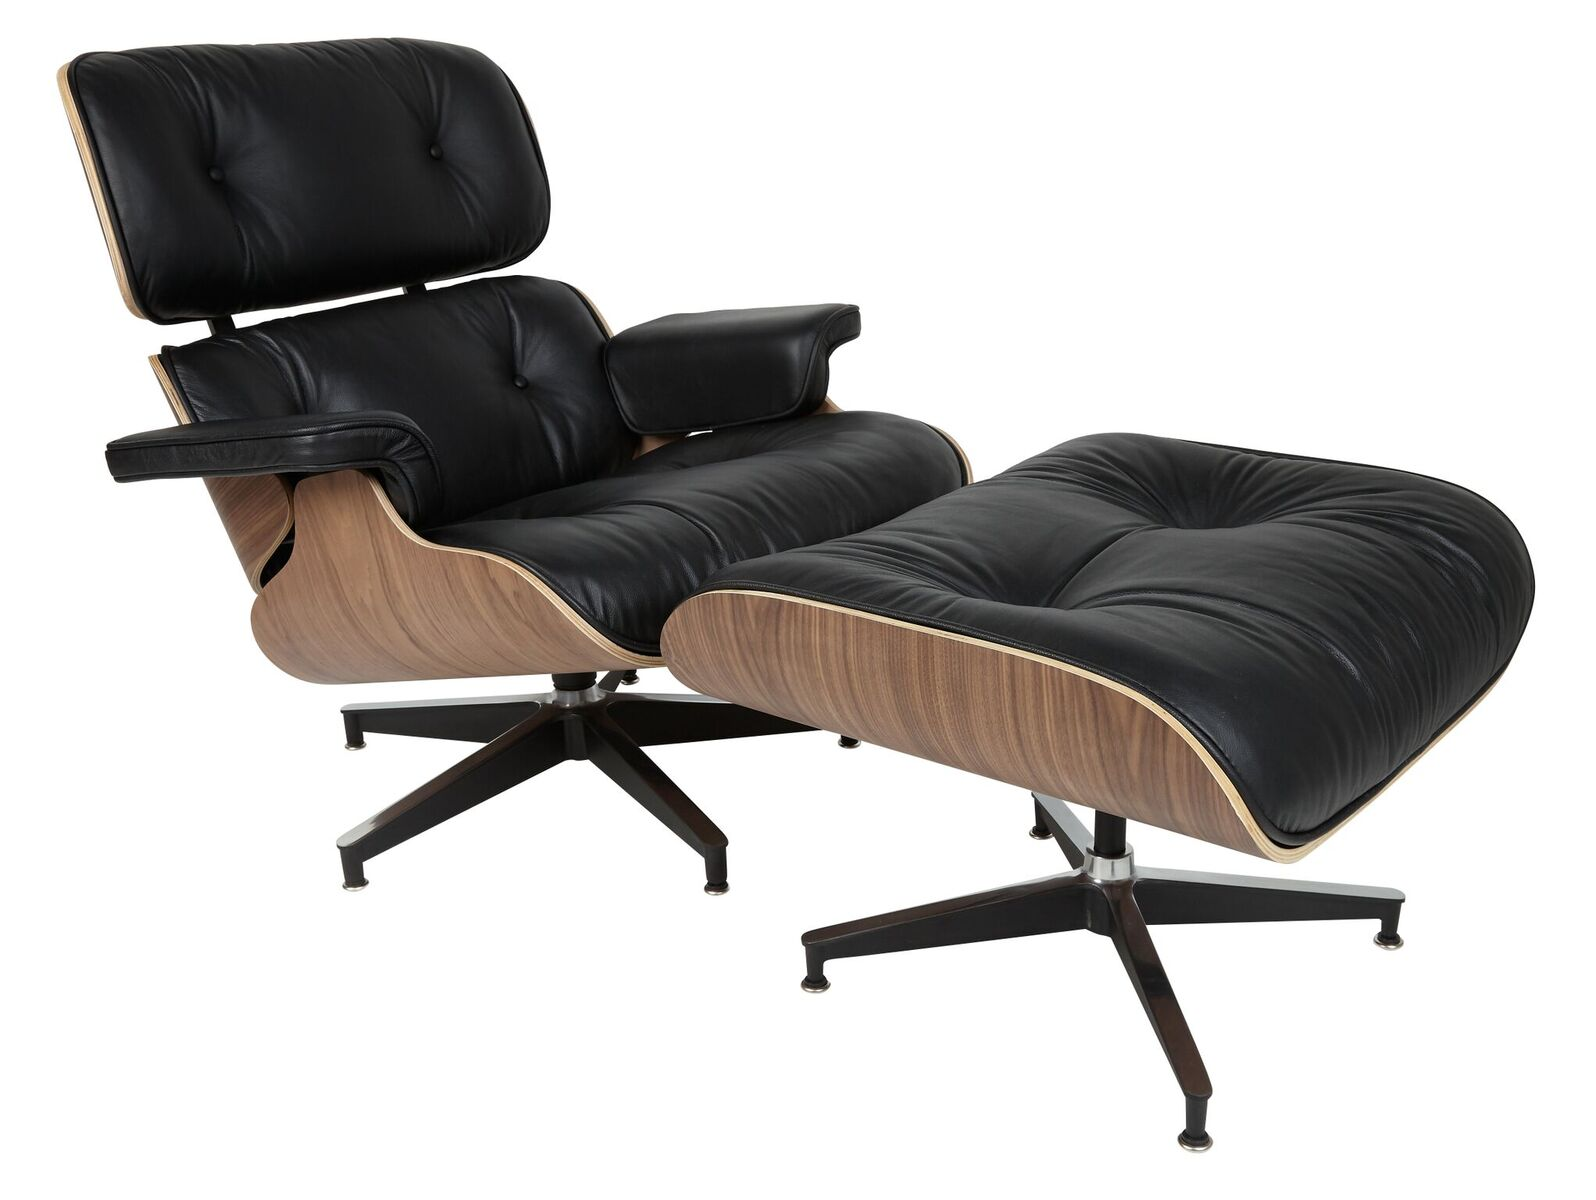 Stupendous Pash Classics Eames Lounge Chair Ottoman The Coolector Alphanode Cool Chair Designs And Ideas Alphanodeonline